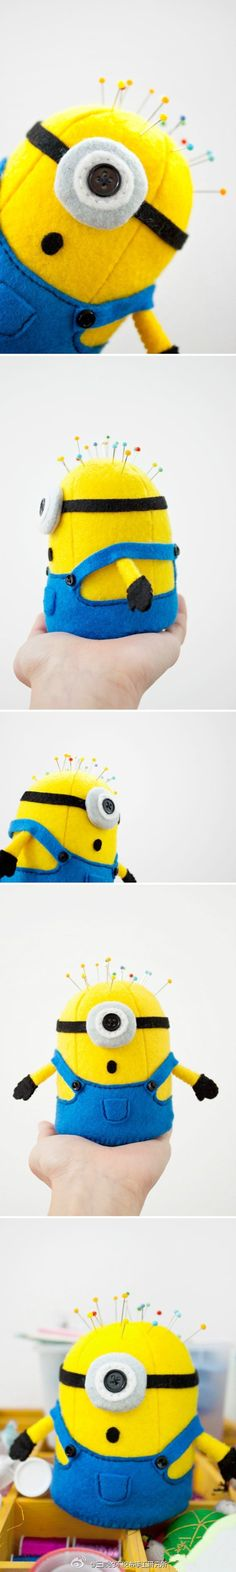 Minion pincushion! @Katie Hrubec Lee